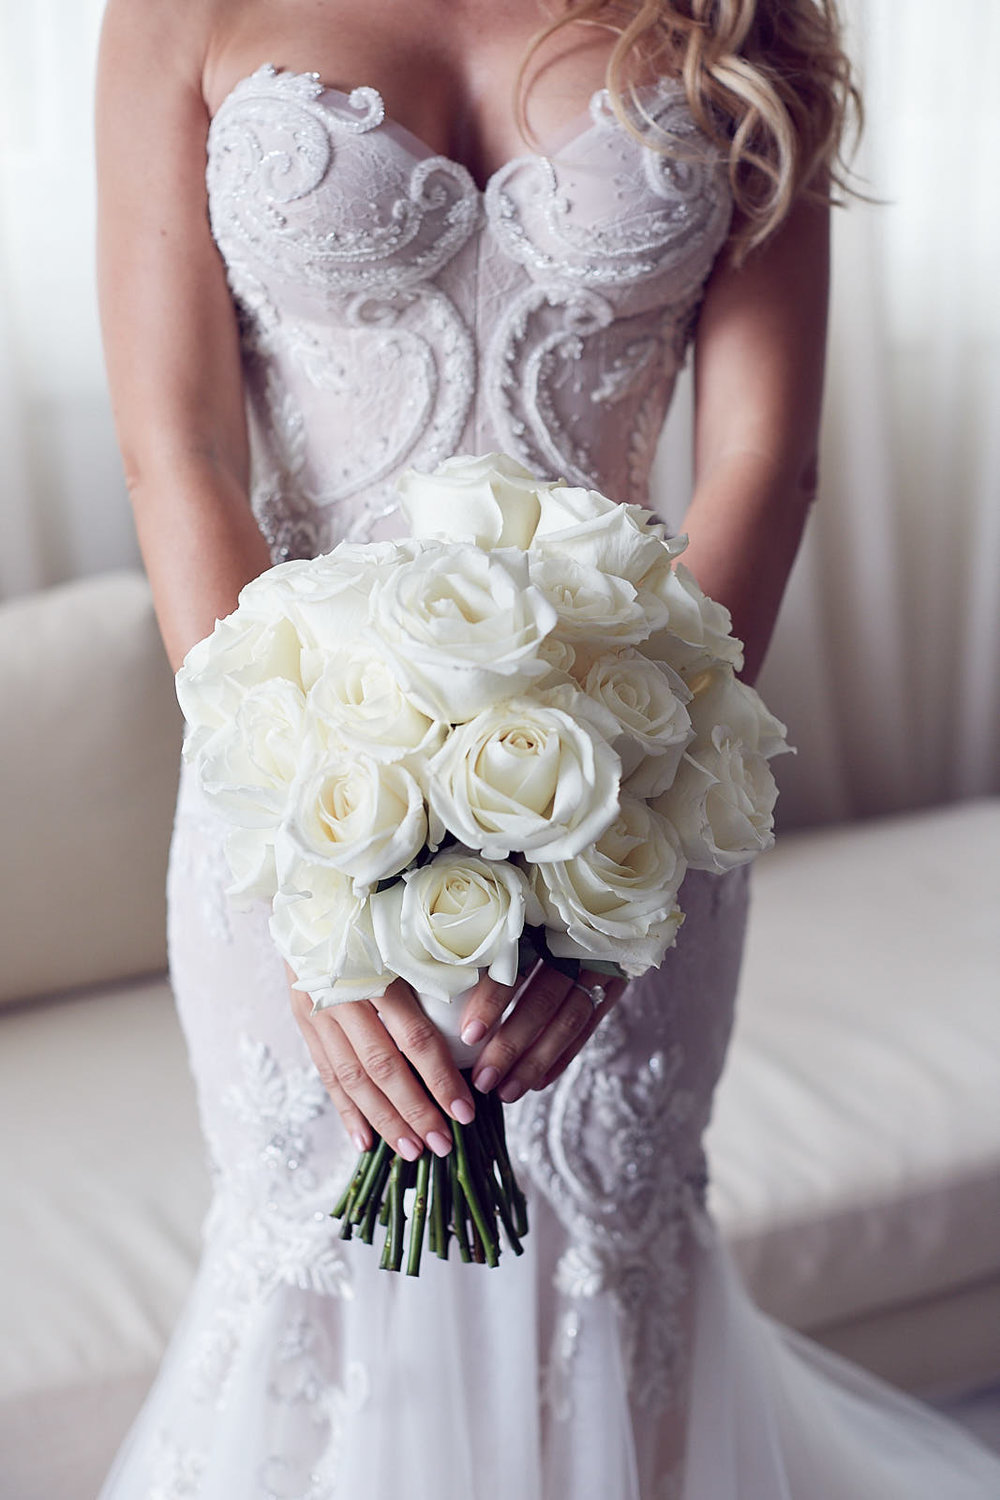 Steven Khalil wedding dress destination wedding photo by lost in love